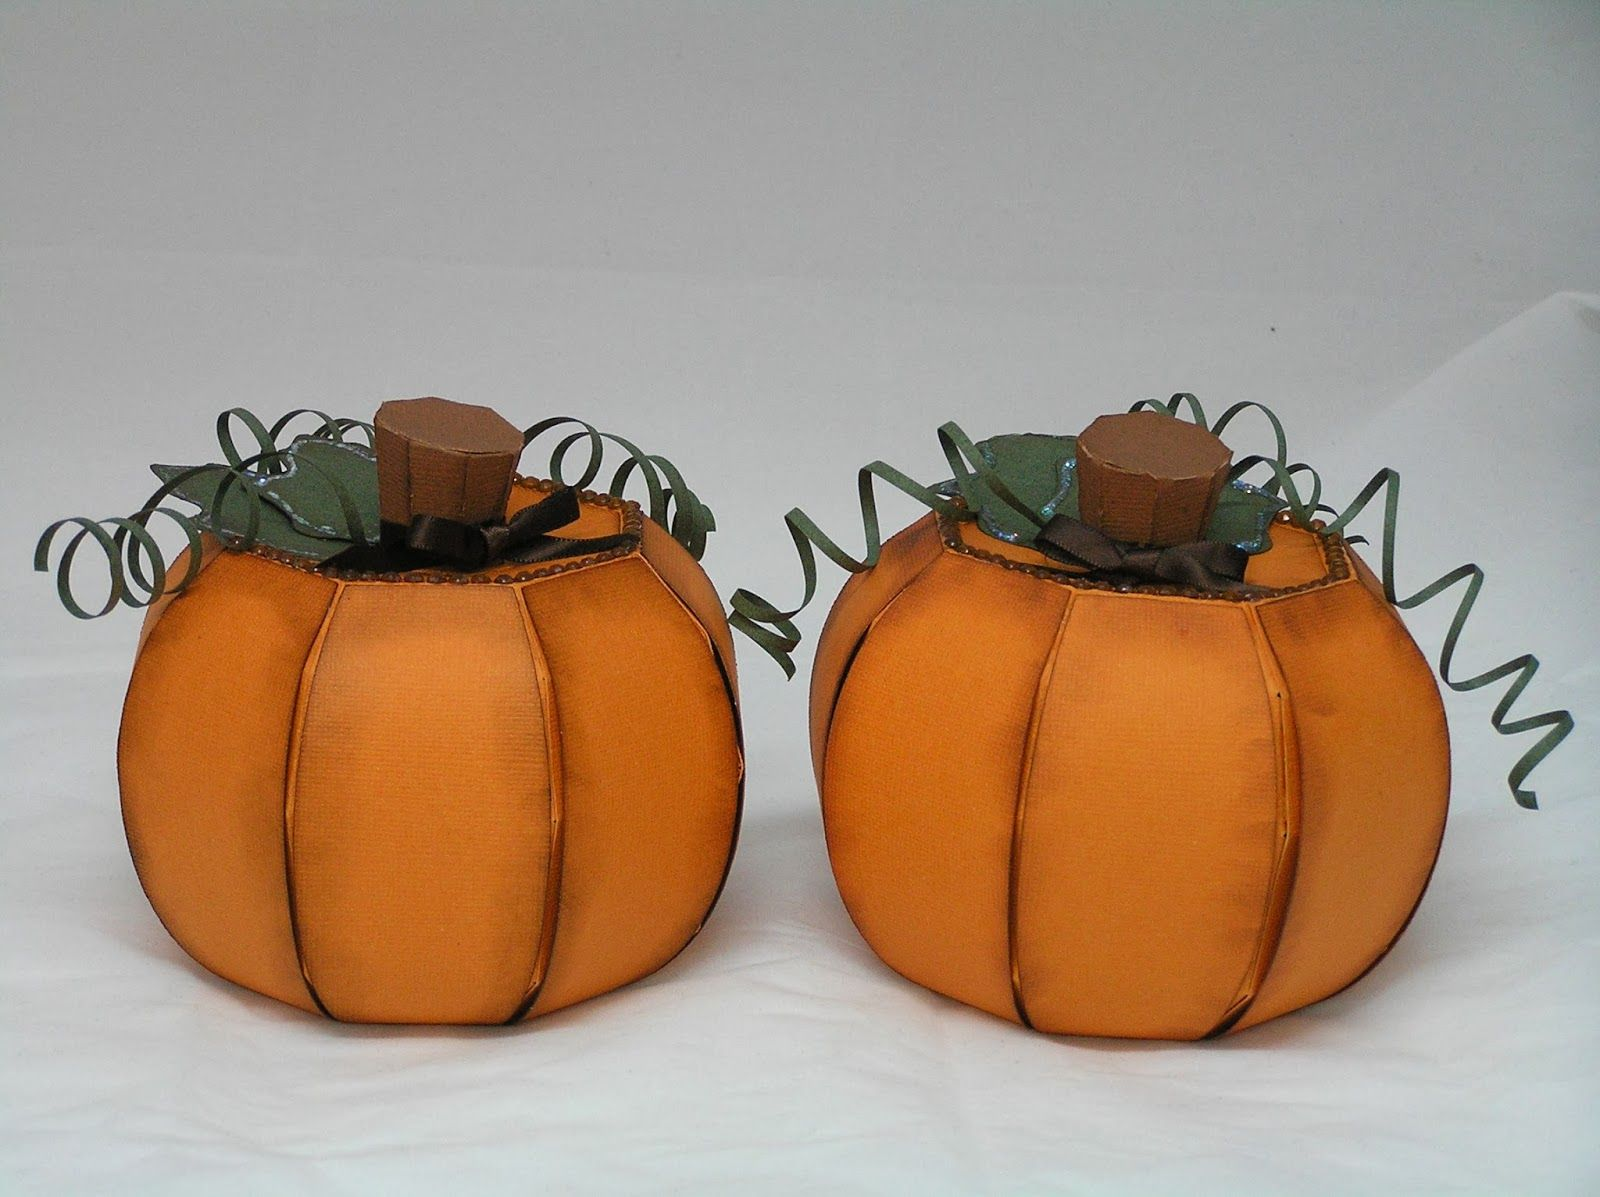 Pin by Penny Lawrence on Cards Pumpkin uses, Pumpkin